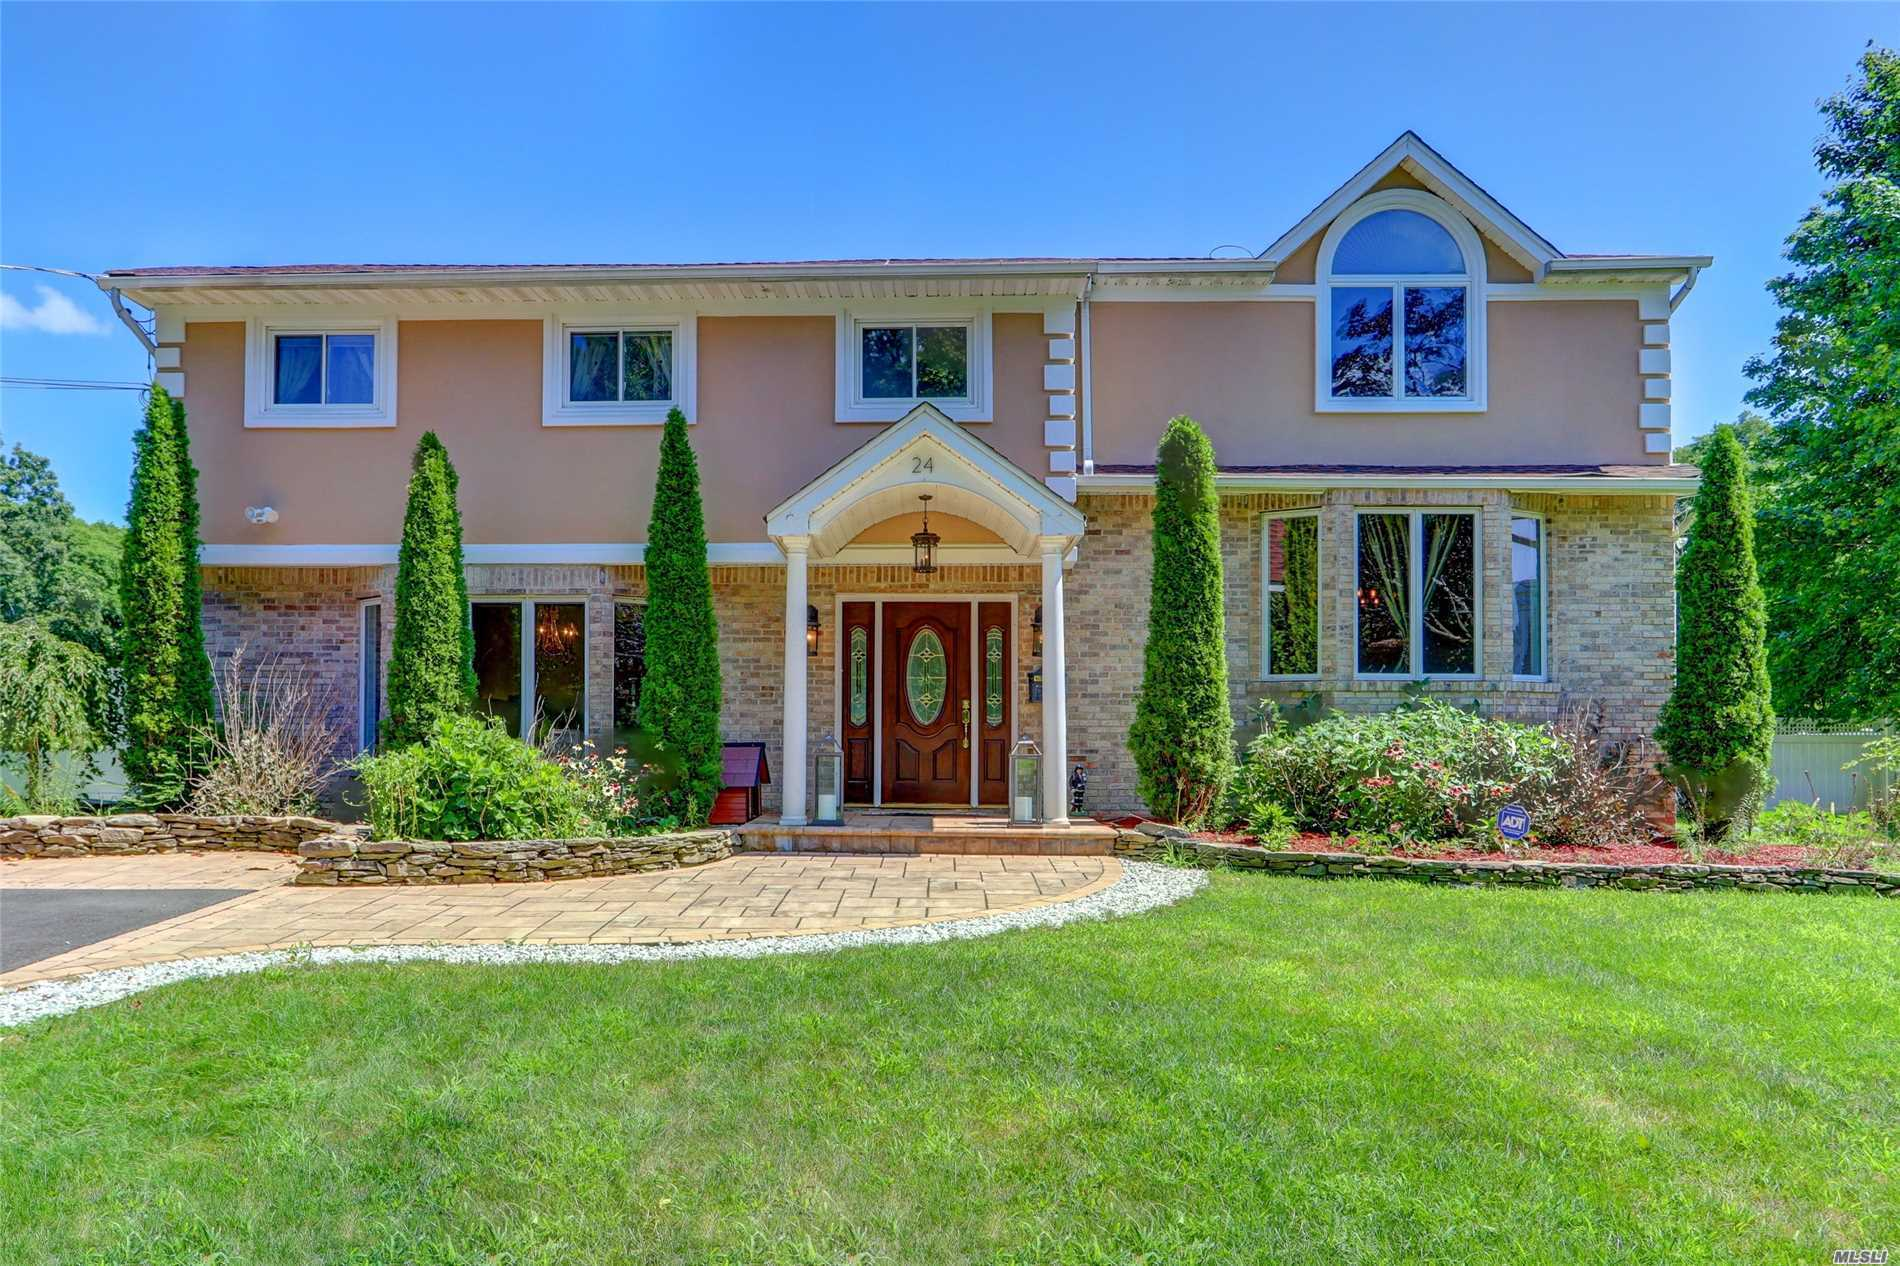 Photo of home for sale at 24 Charter Ave, Dix Hills NY